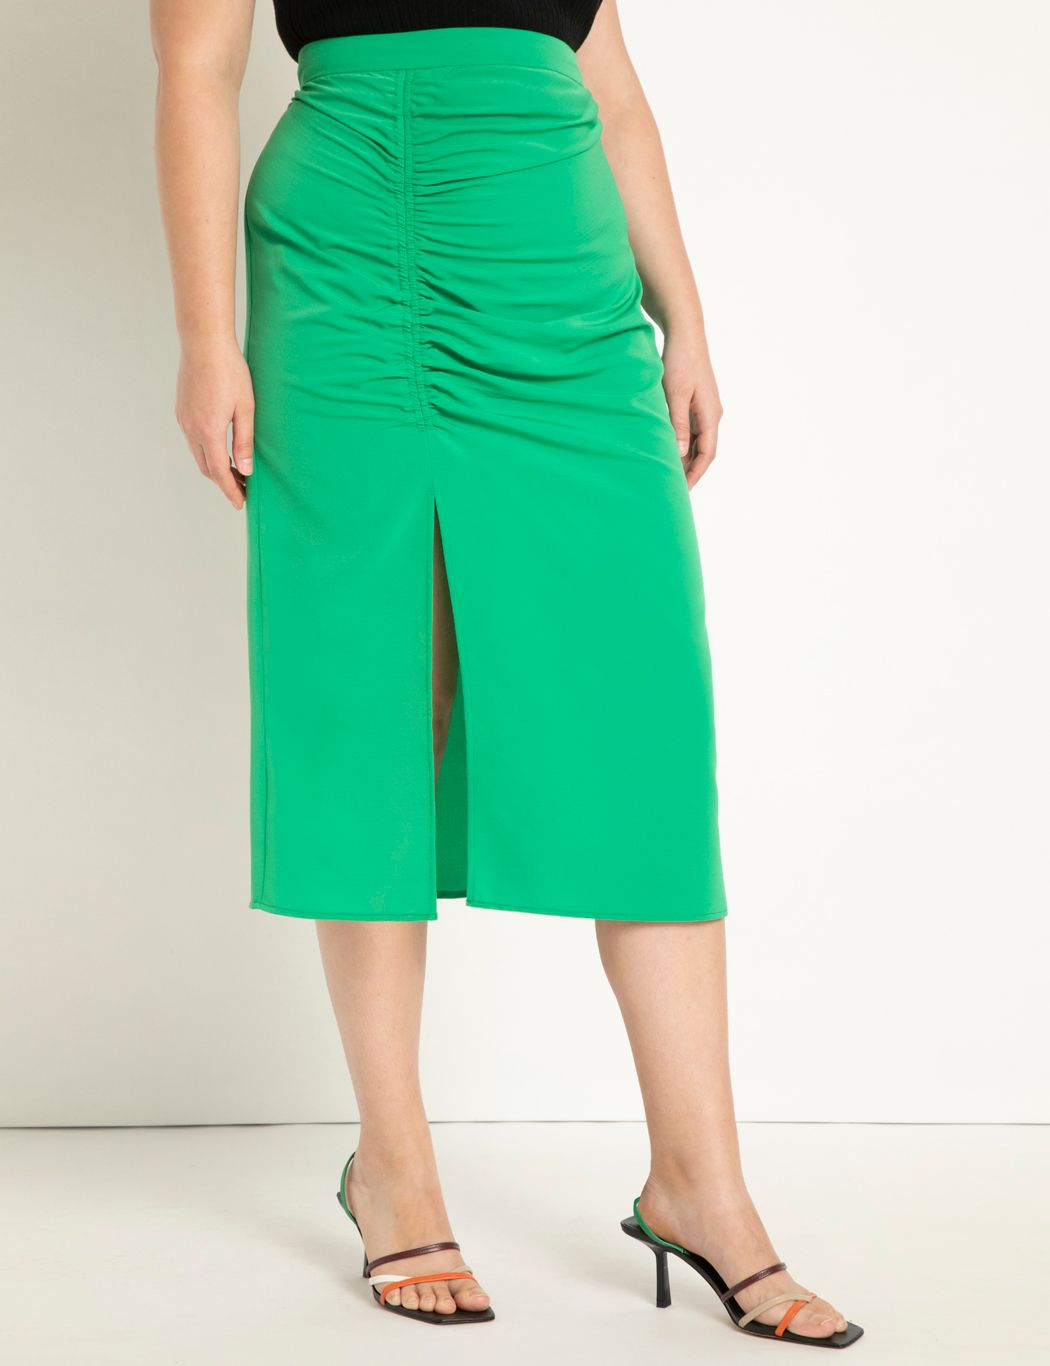 Ruched Tunnel Skirt